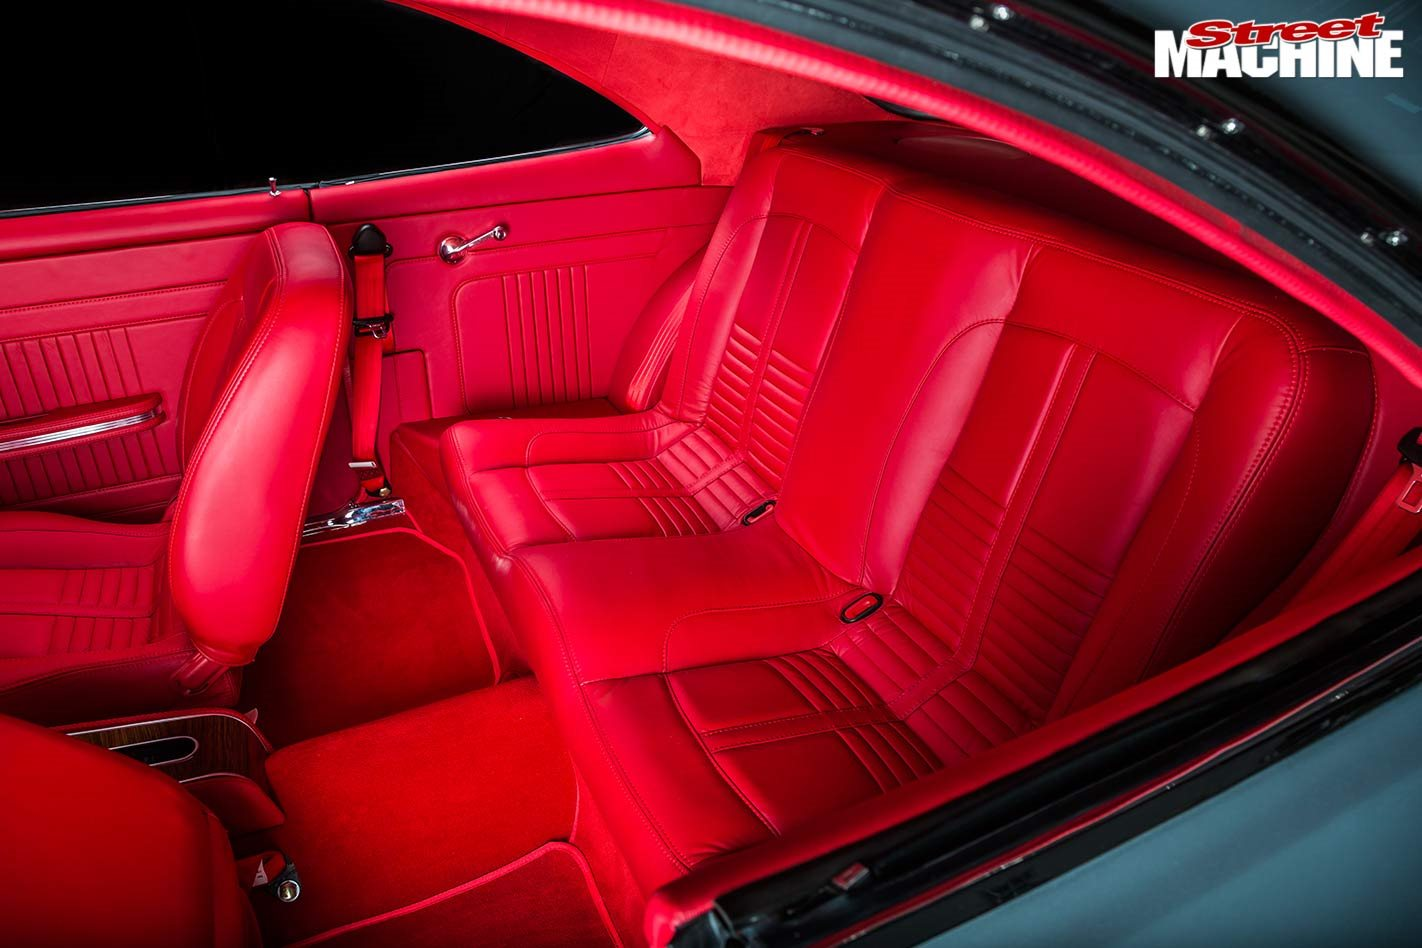 Holden HK Monaro rear seats